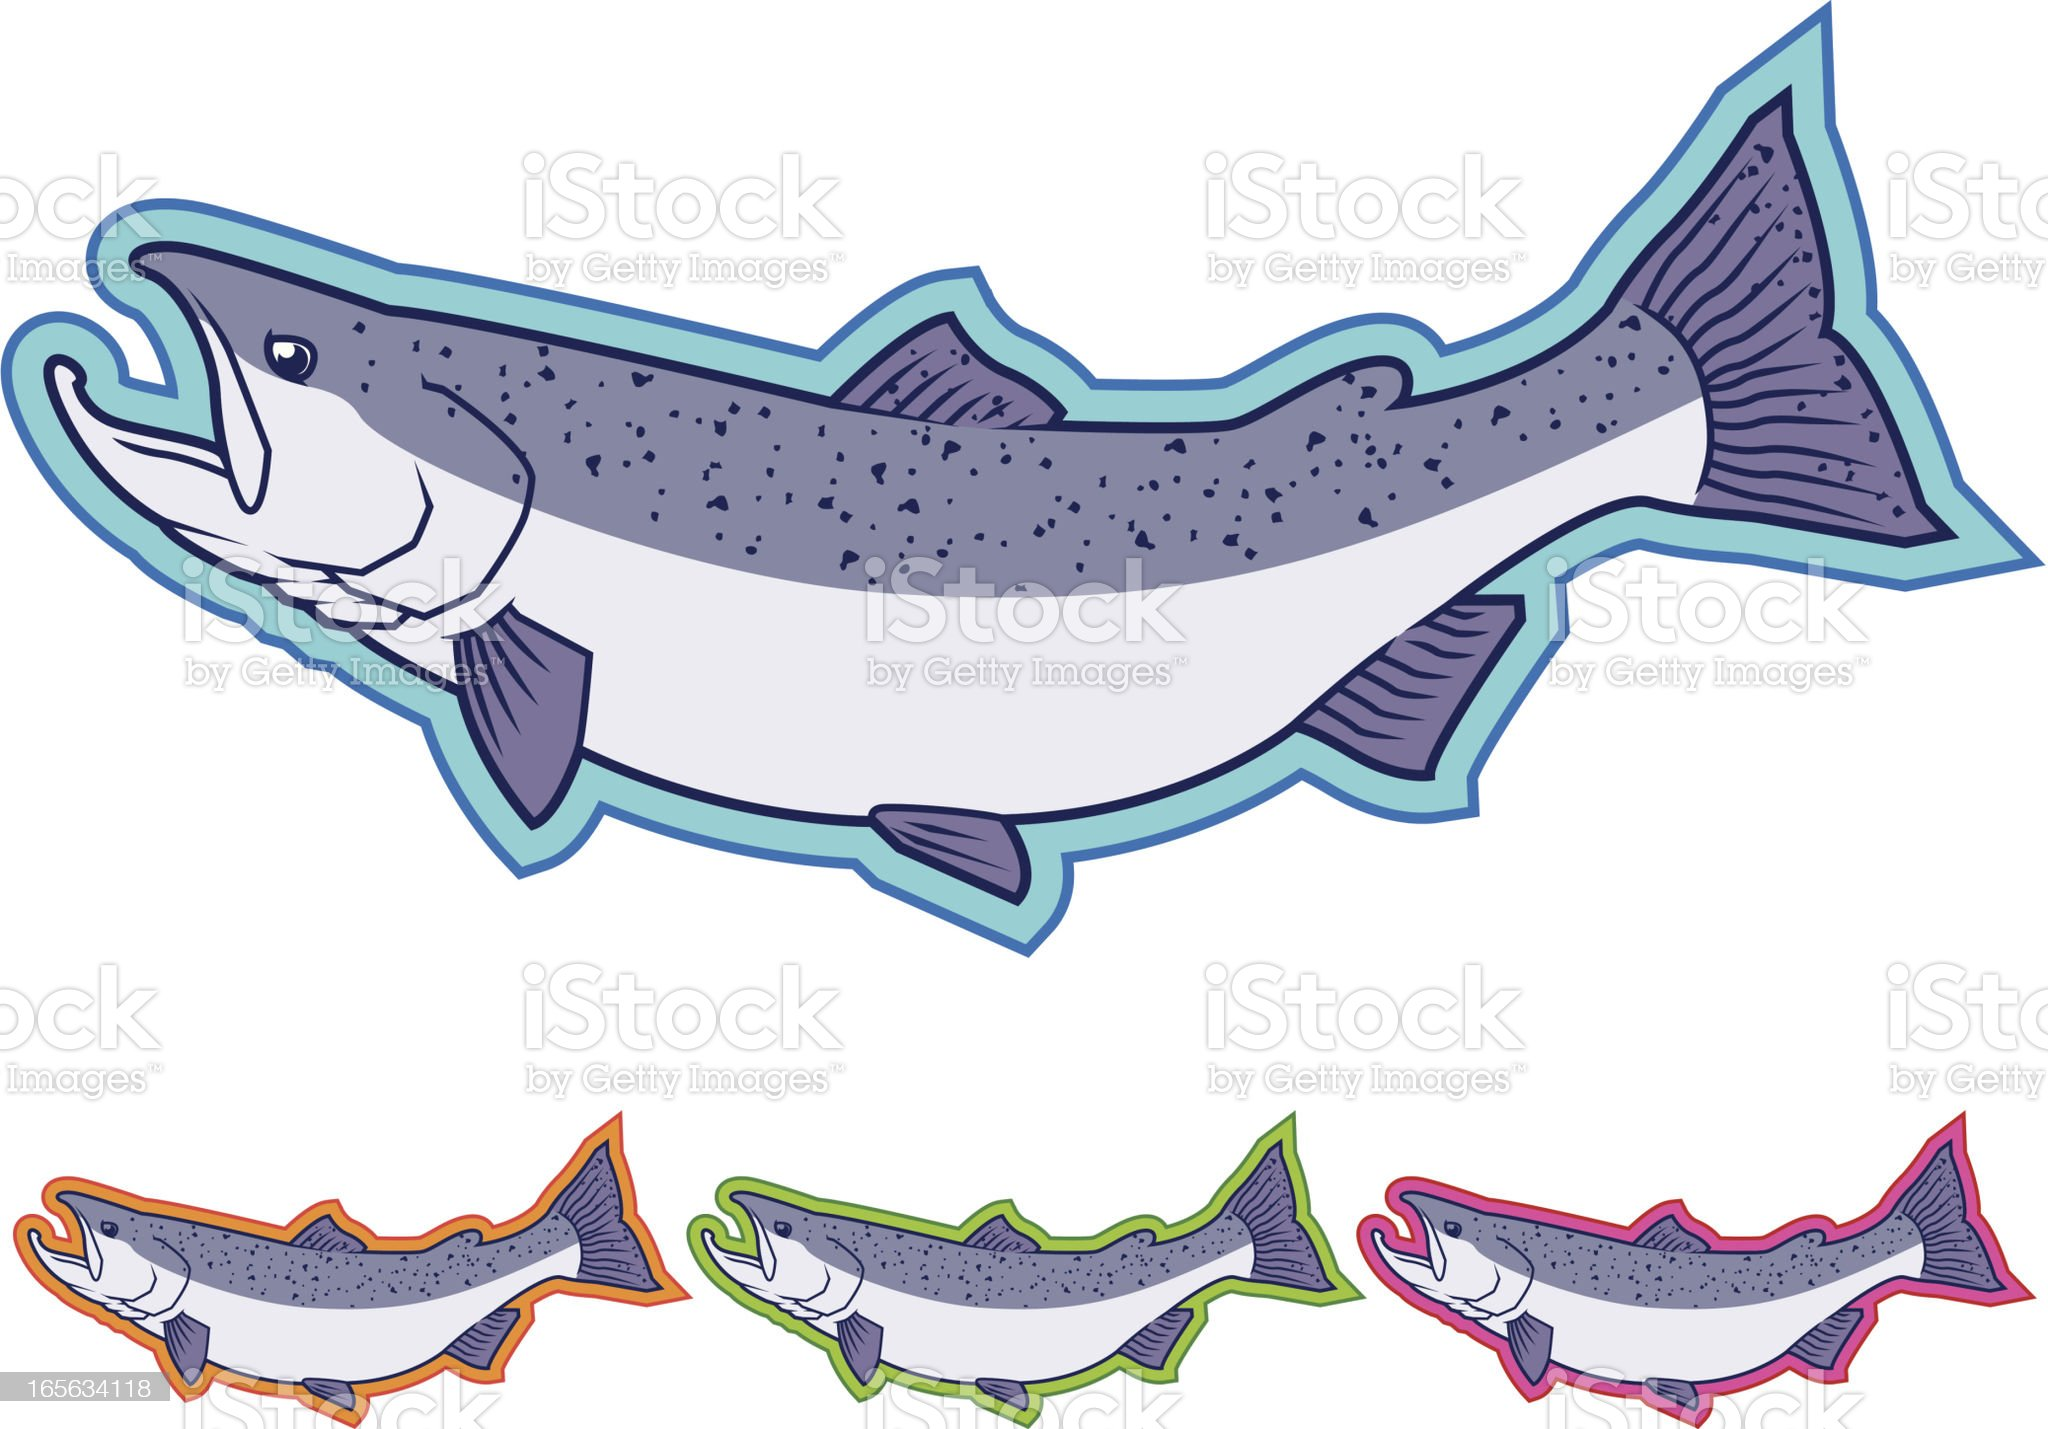 Pacific Salmon Icons - Different Colors royalty-free stock vector art